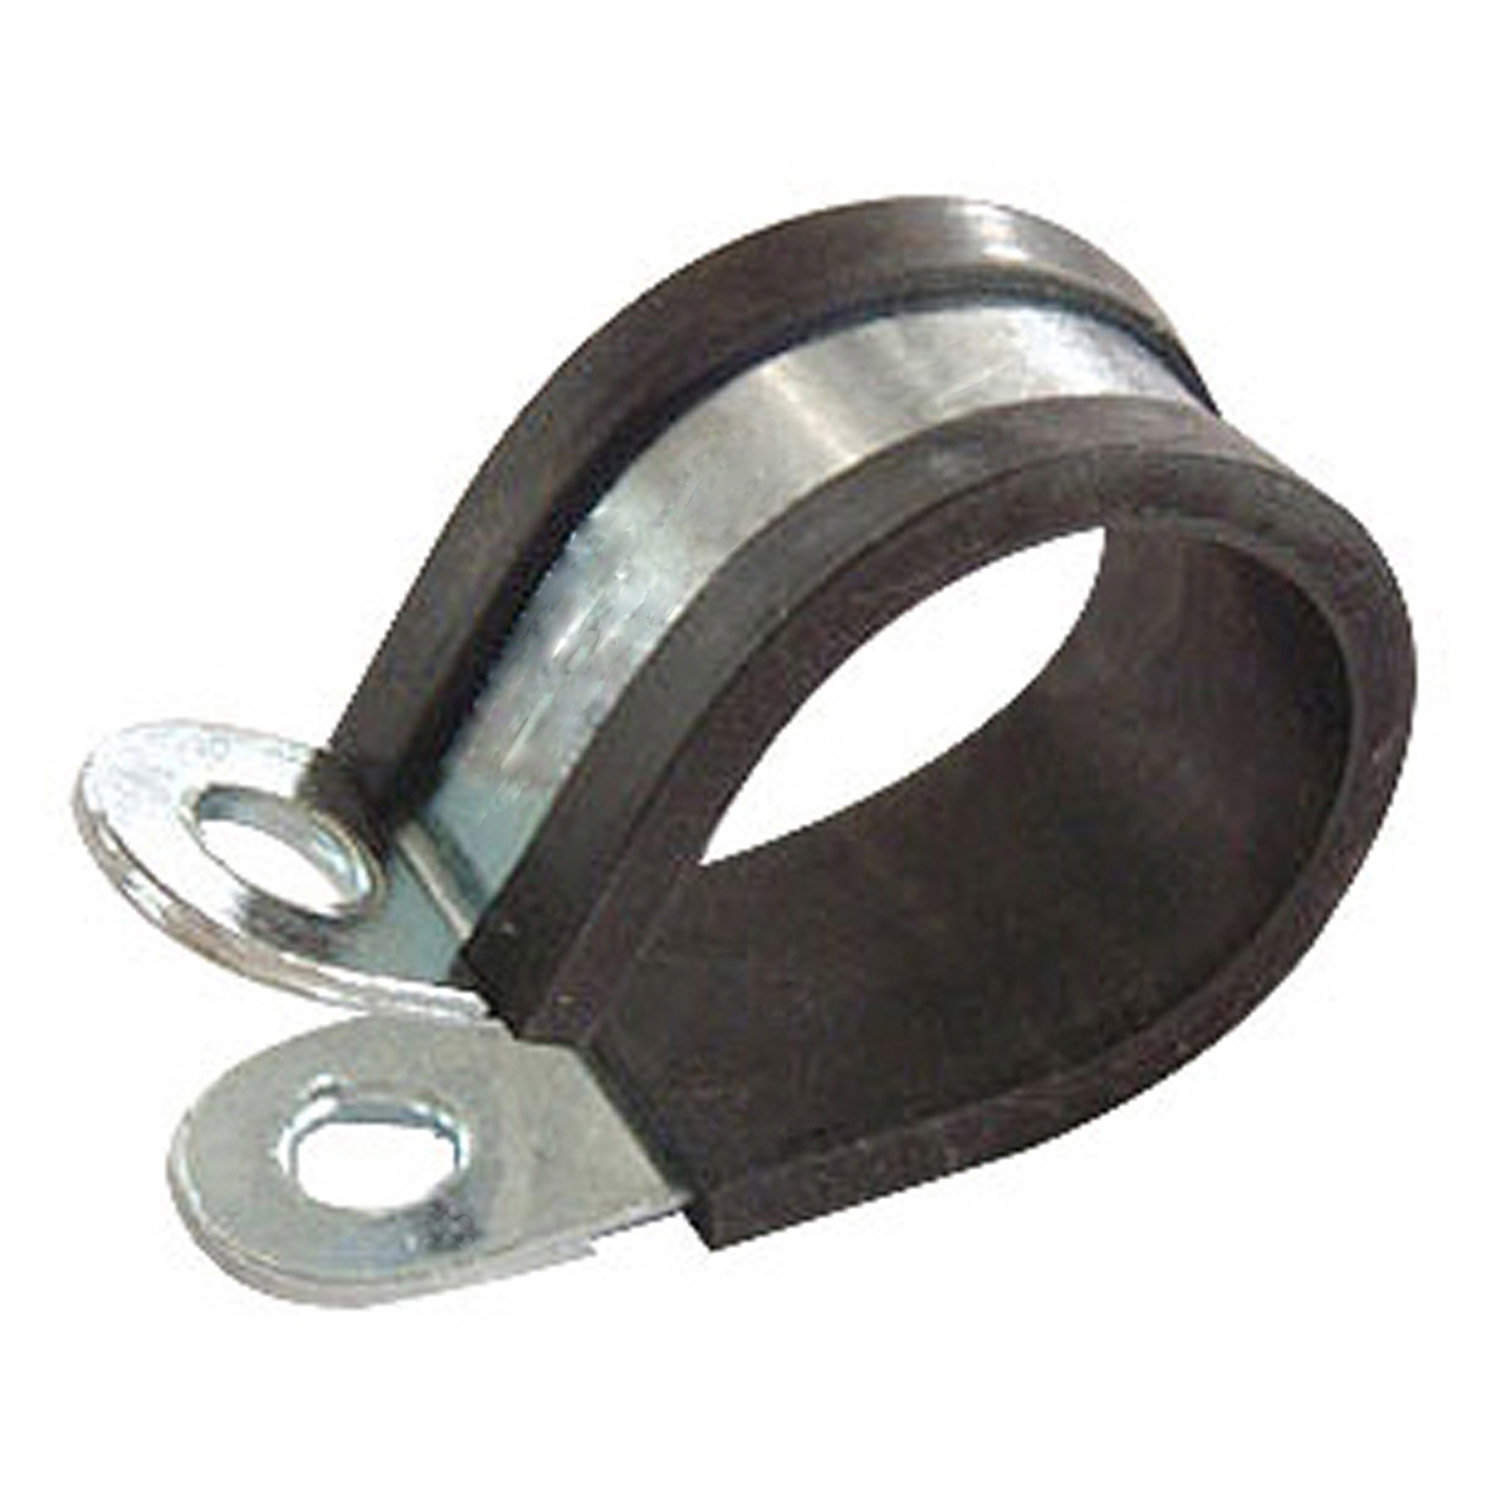 Stainless steel SS304 Germany Type Hose Clamp W4 | Top